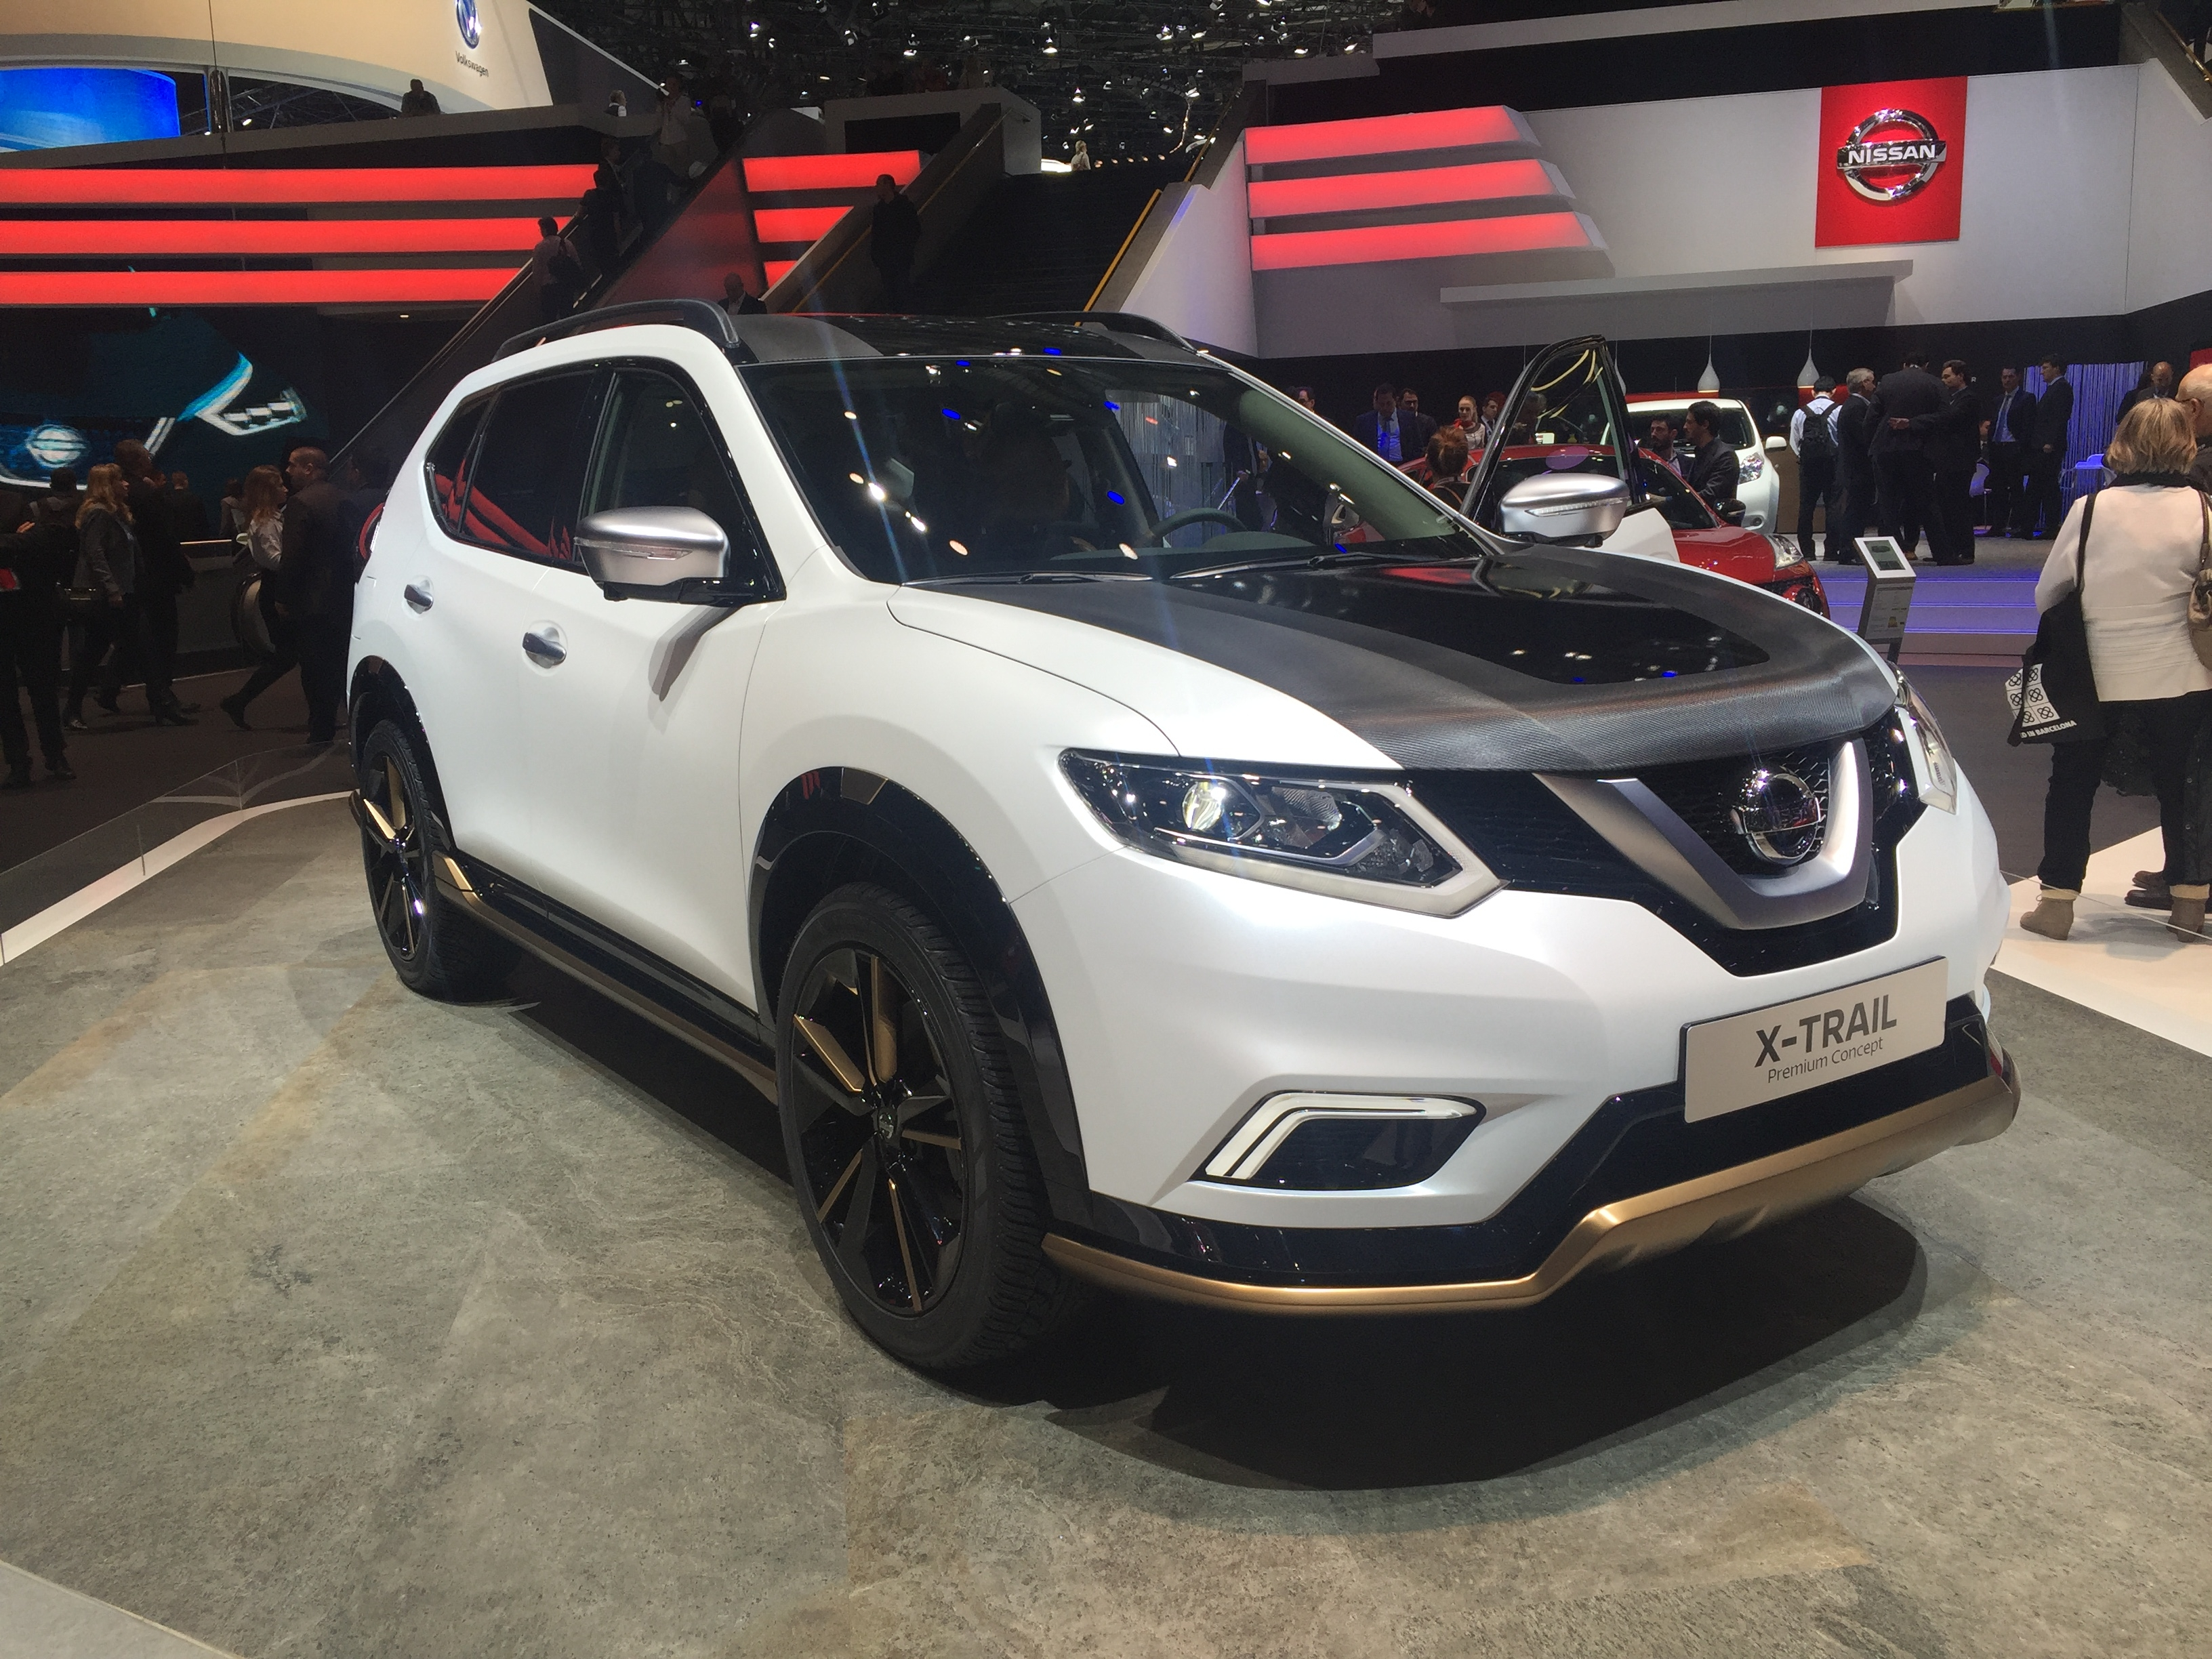 nissan x trail premium concept embourgeois en direct du salon de gen ve 2016. Black Bedroom Furniture Sets. Home Design Ideas